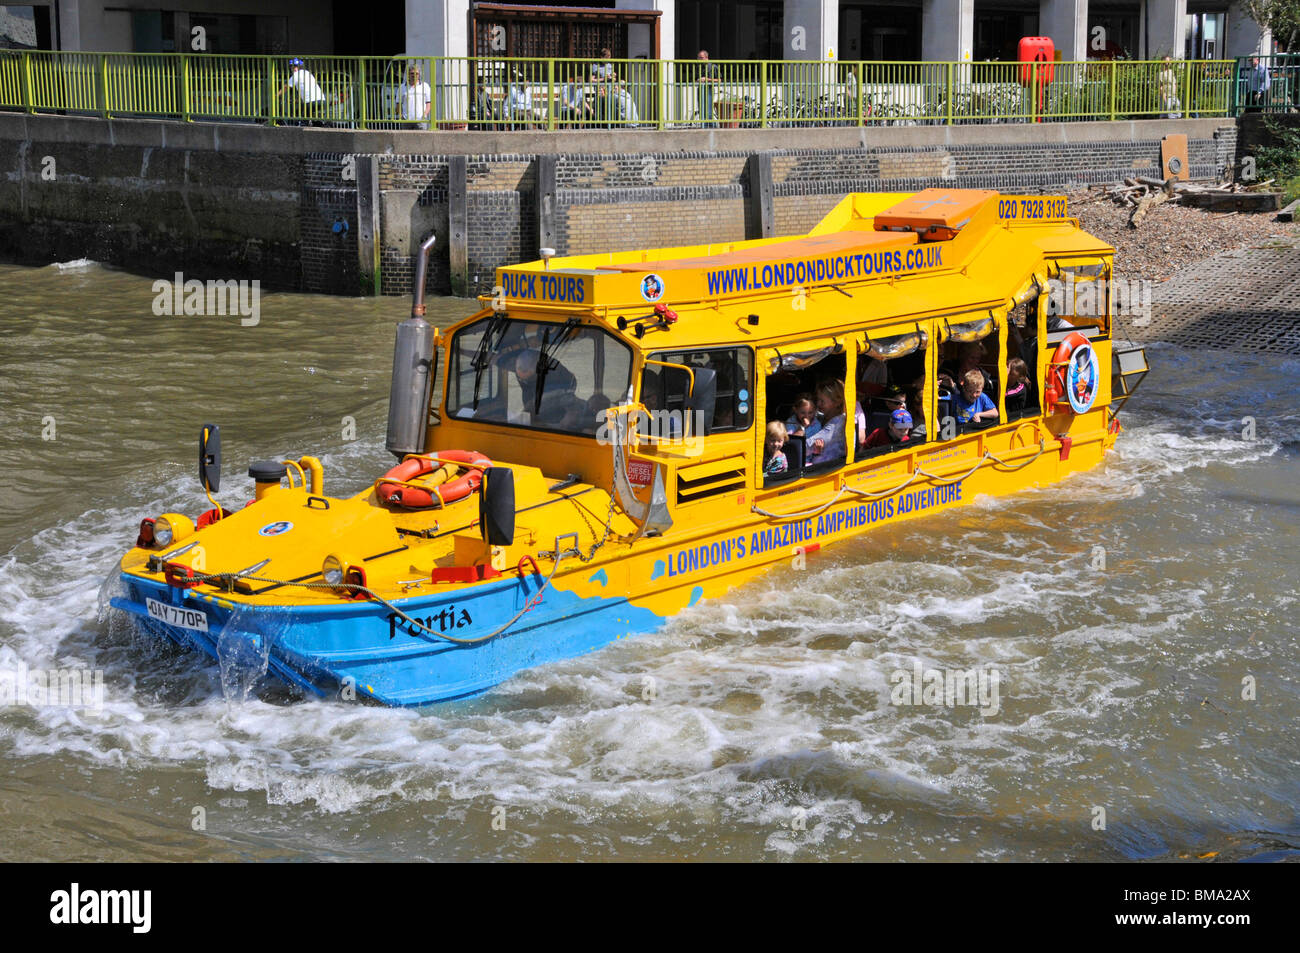 Front & side close up view of people in unusual dual purpose touristy boat splash into Thames for sightseeing - Stock Image